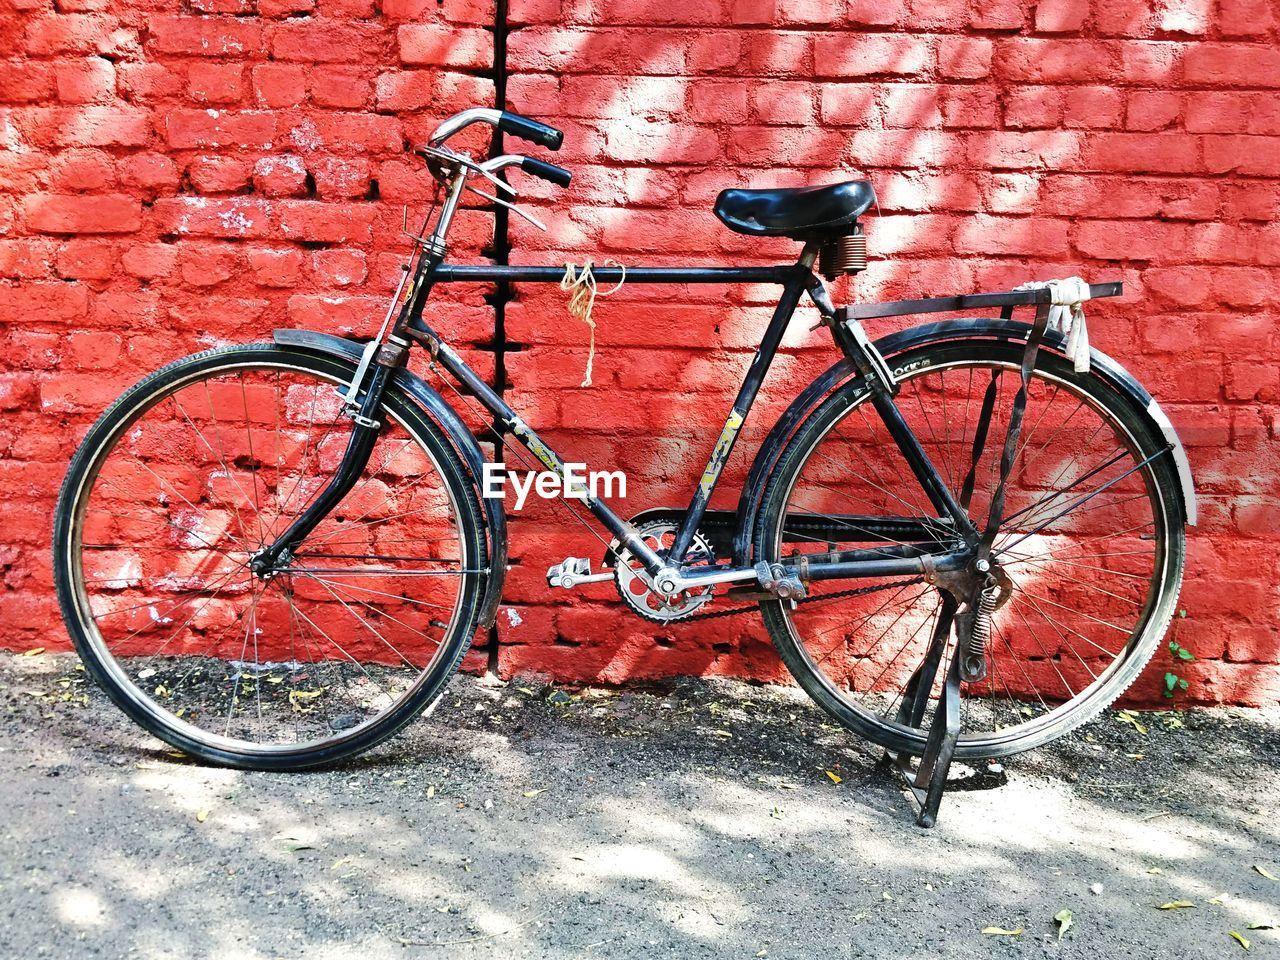 bicycle, transportation, brick wall, mode of transport, red, metal, outdoors, land vehicle, day, leaning, stationary, no people, built structure, architecture